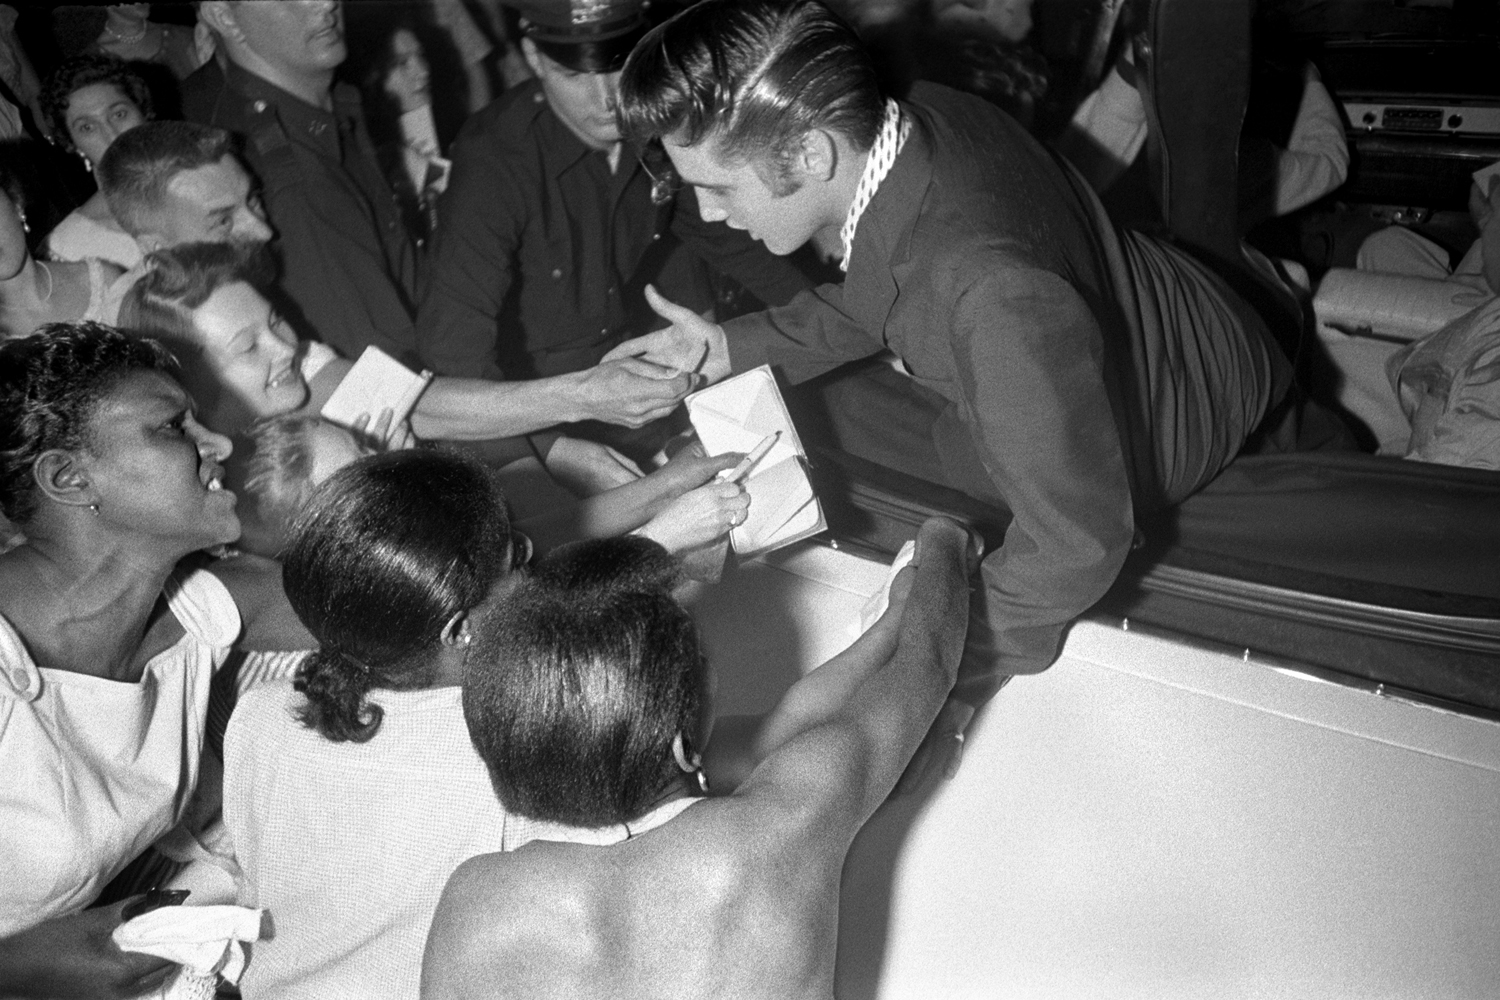 July 1, 1956. The Hudson Theatre, New York. Elvis leaving the theatre where he had performed on the Steve Allen show. This one is unusual...the black girls who are fans are trying to touch him. You think of Little Richard, but you don't think of Elvis and black fans.